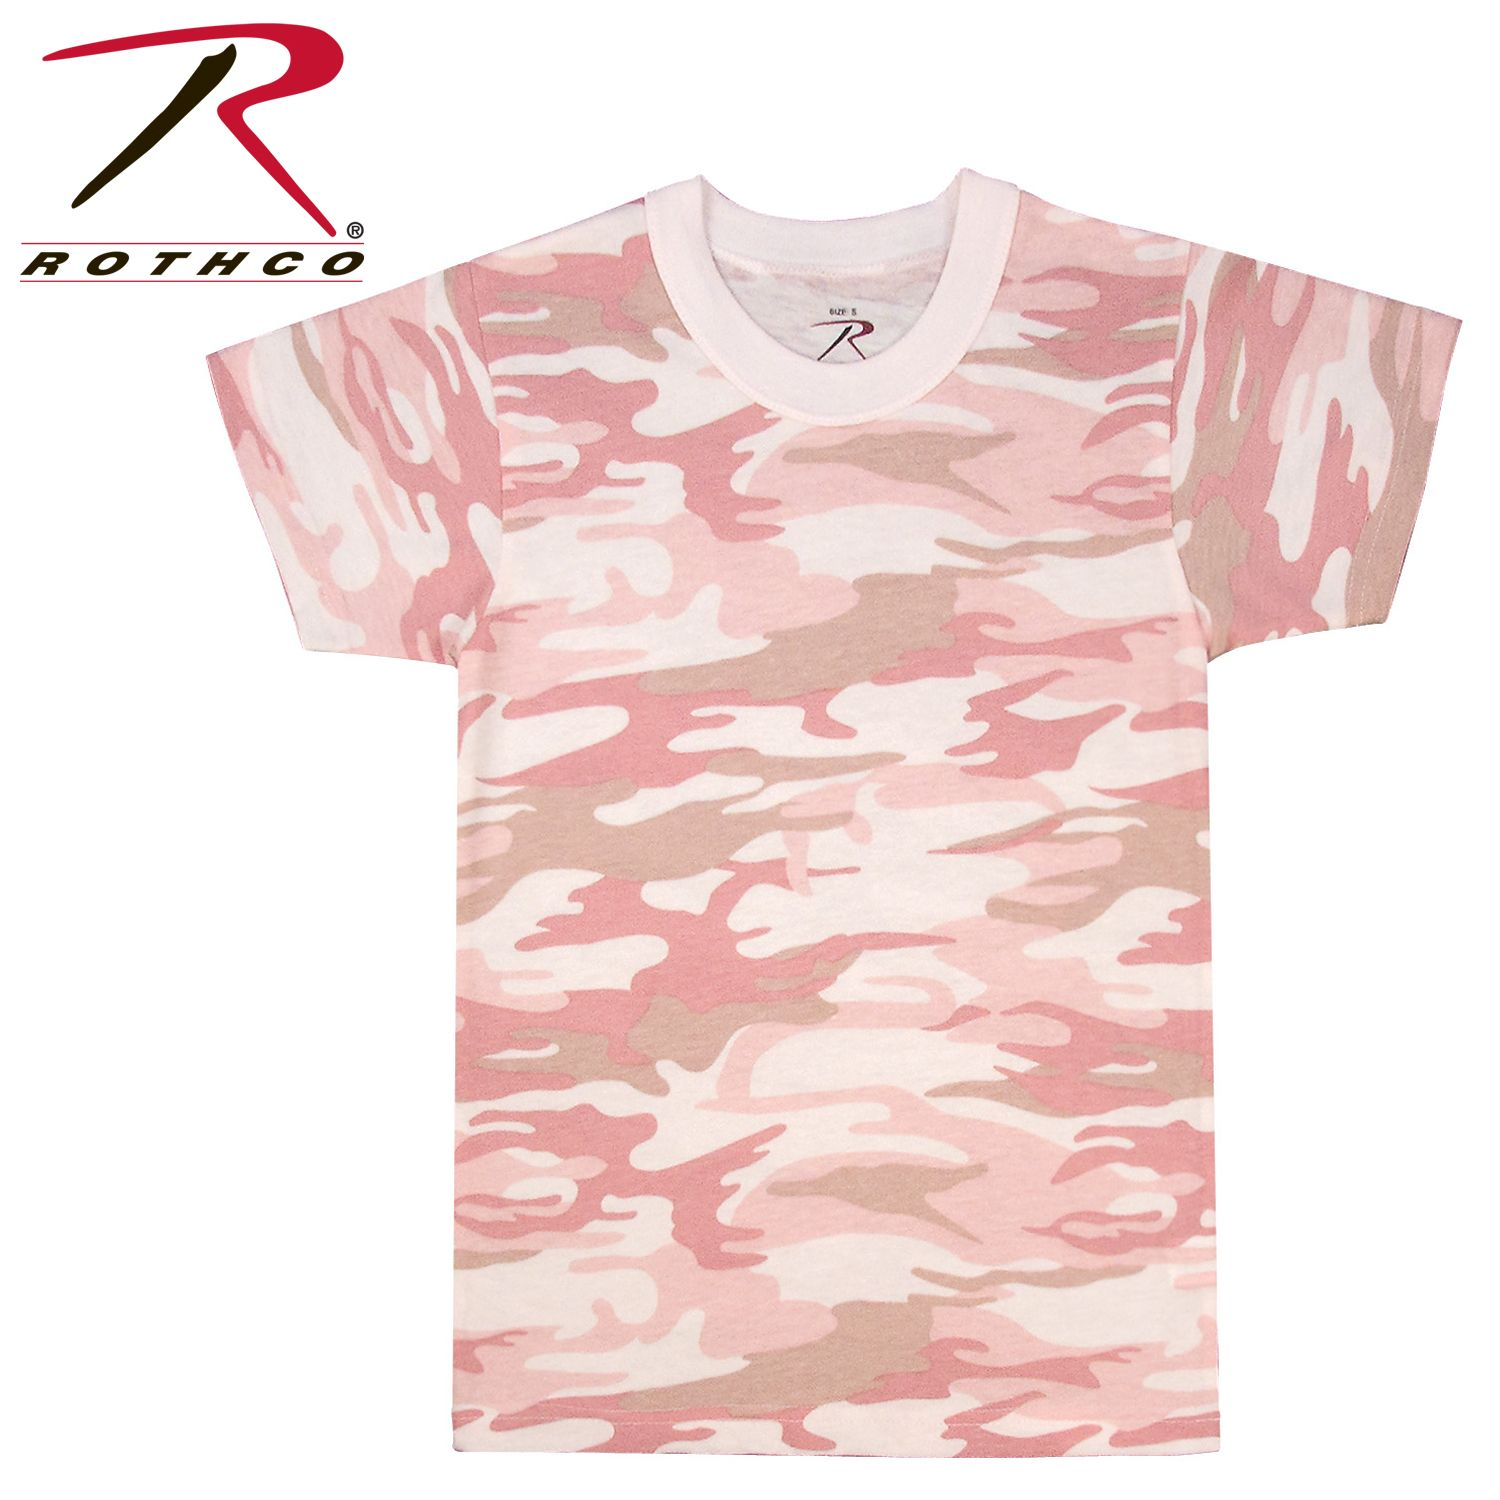 f2733e21 Buy Rothco Kids Camo T-Shirts - Rothco Online at Best price - TX